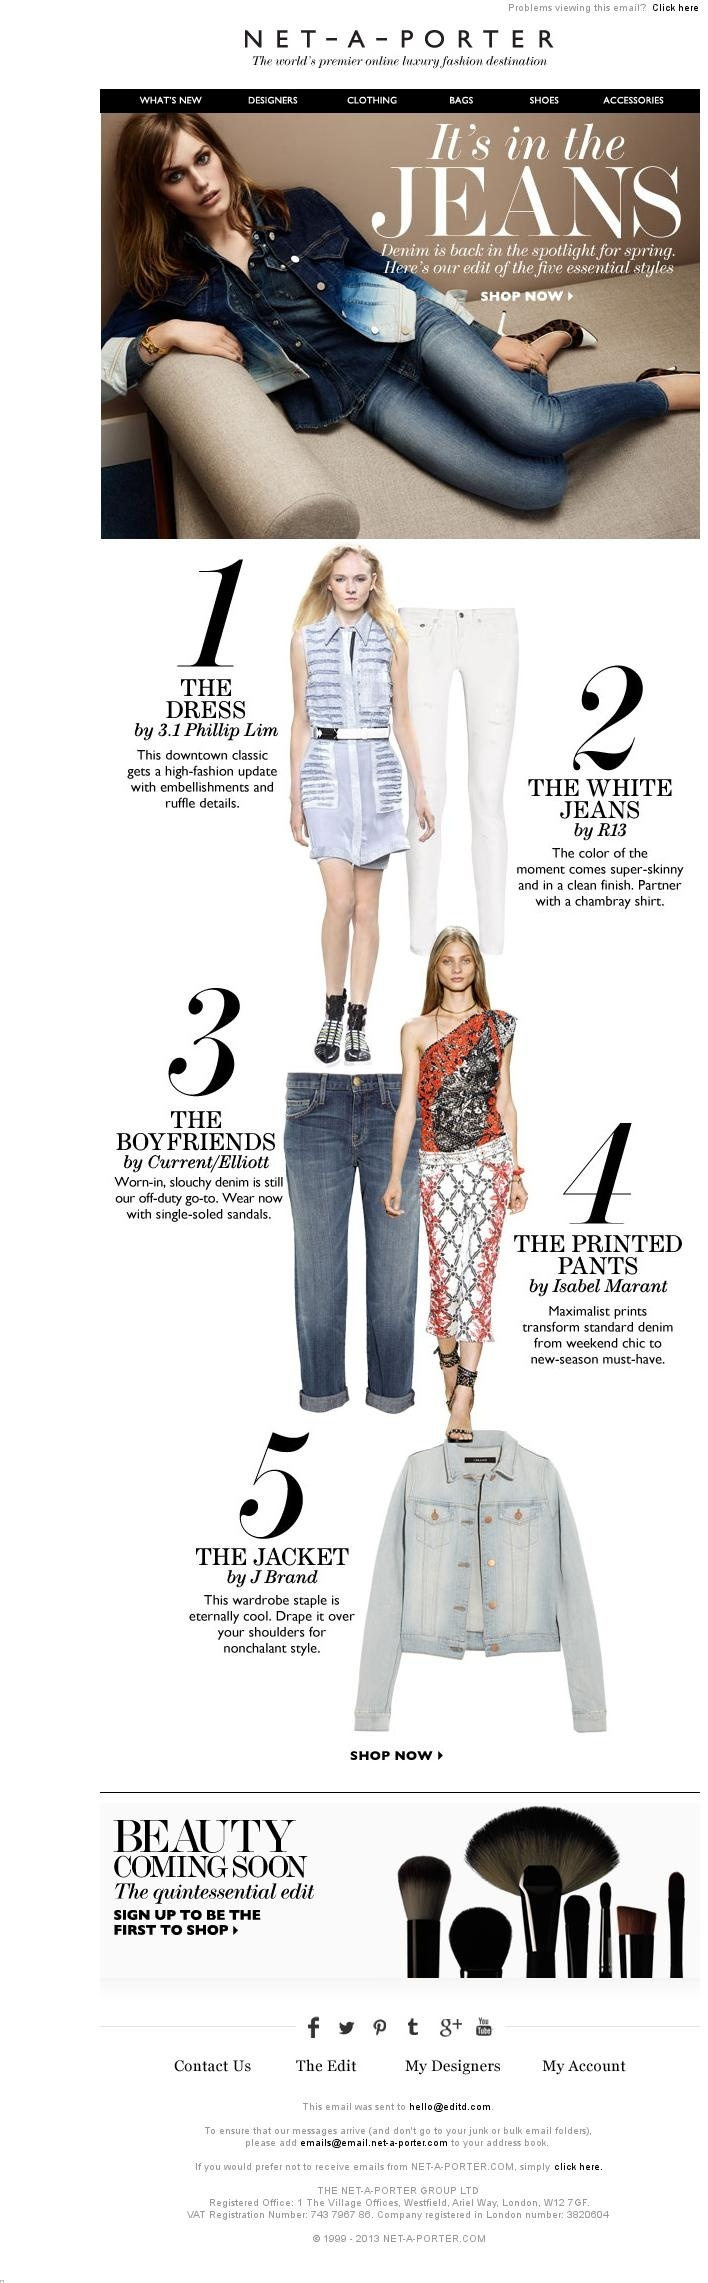 Le Meilleur Editd Reveal The Latest Denim Trends Backed By Data Ce Mois Ci